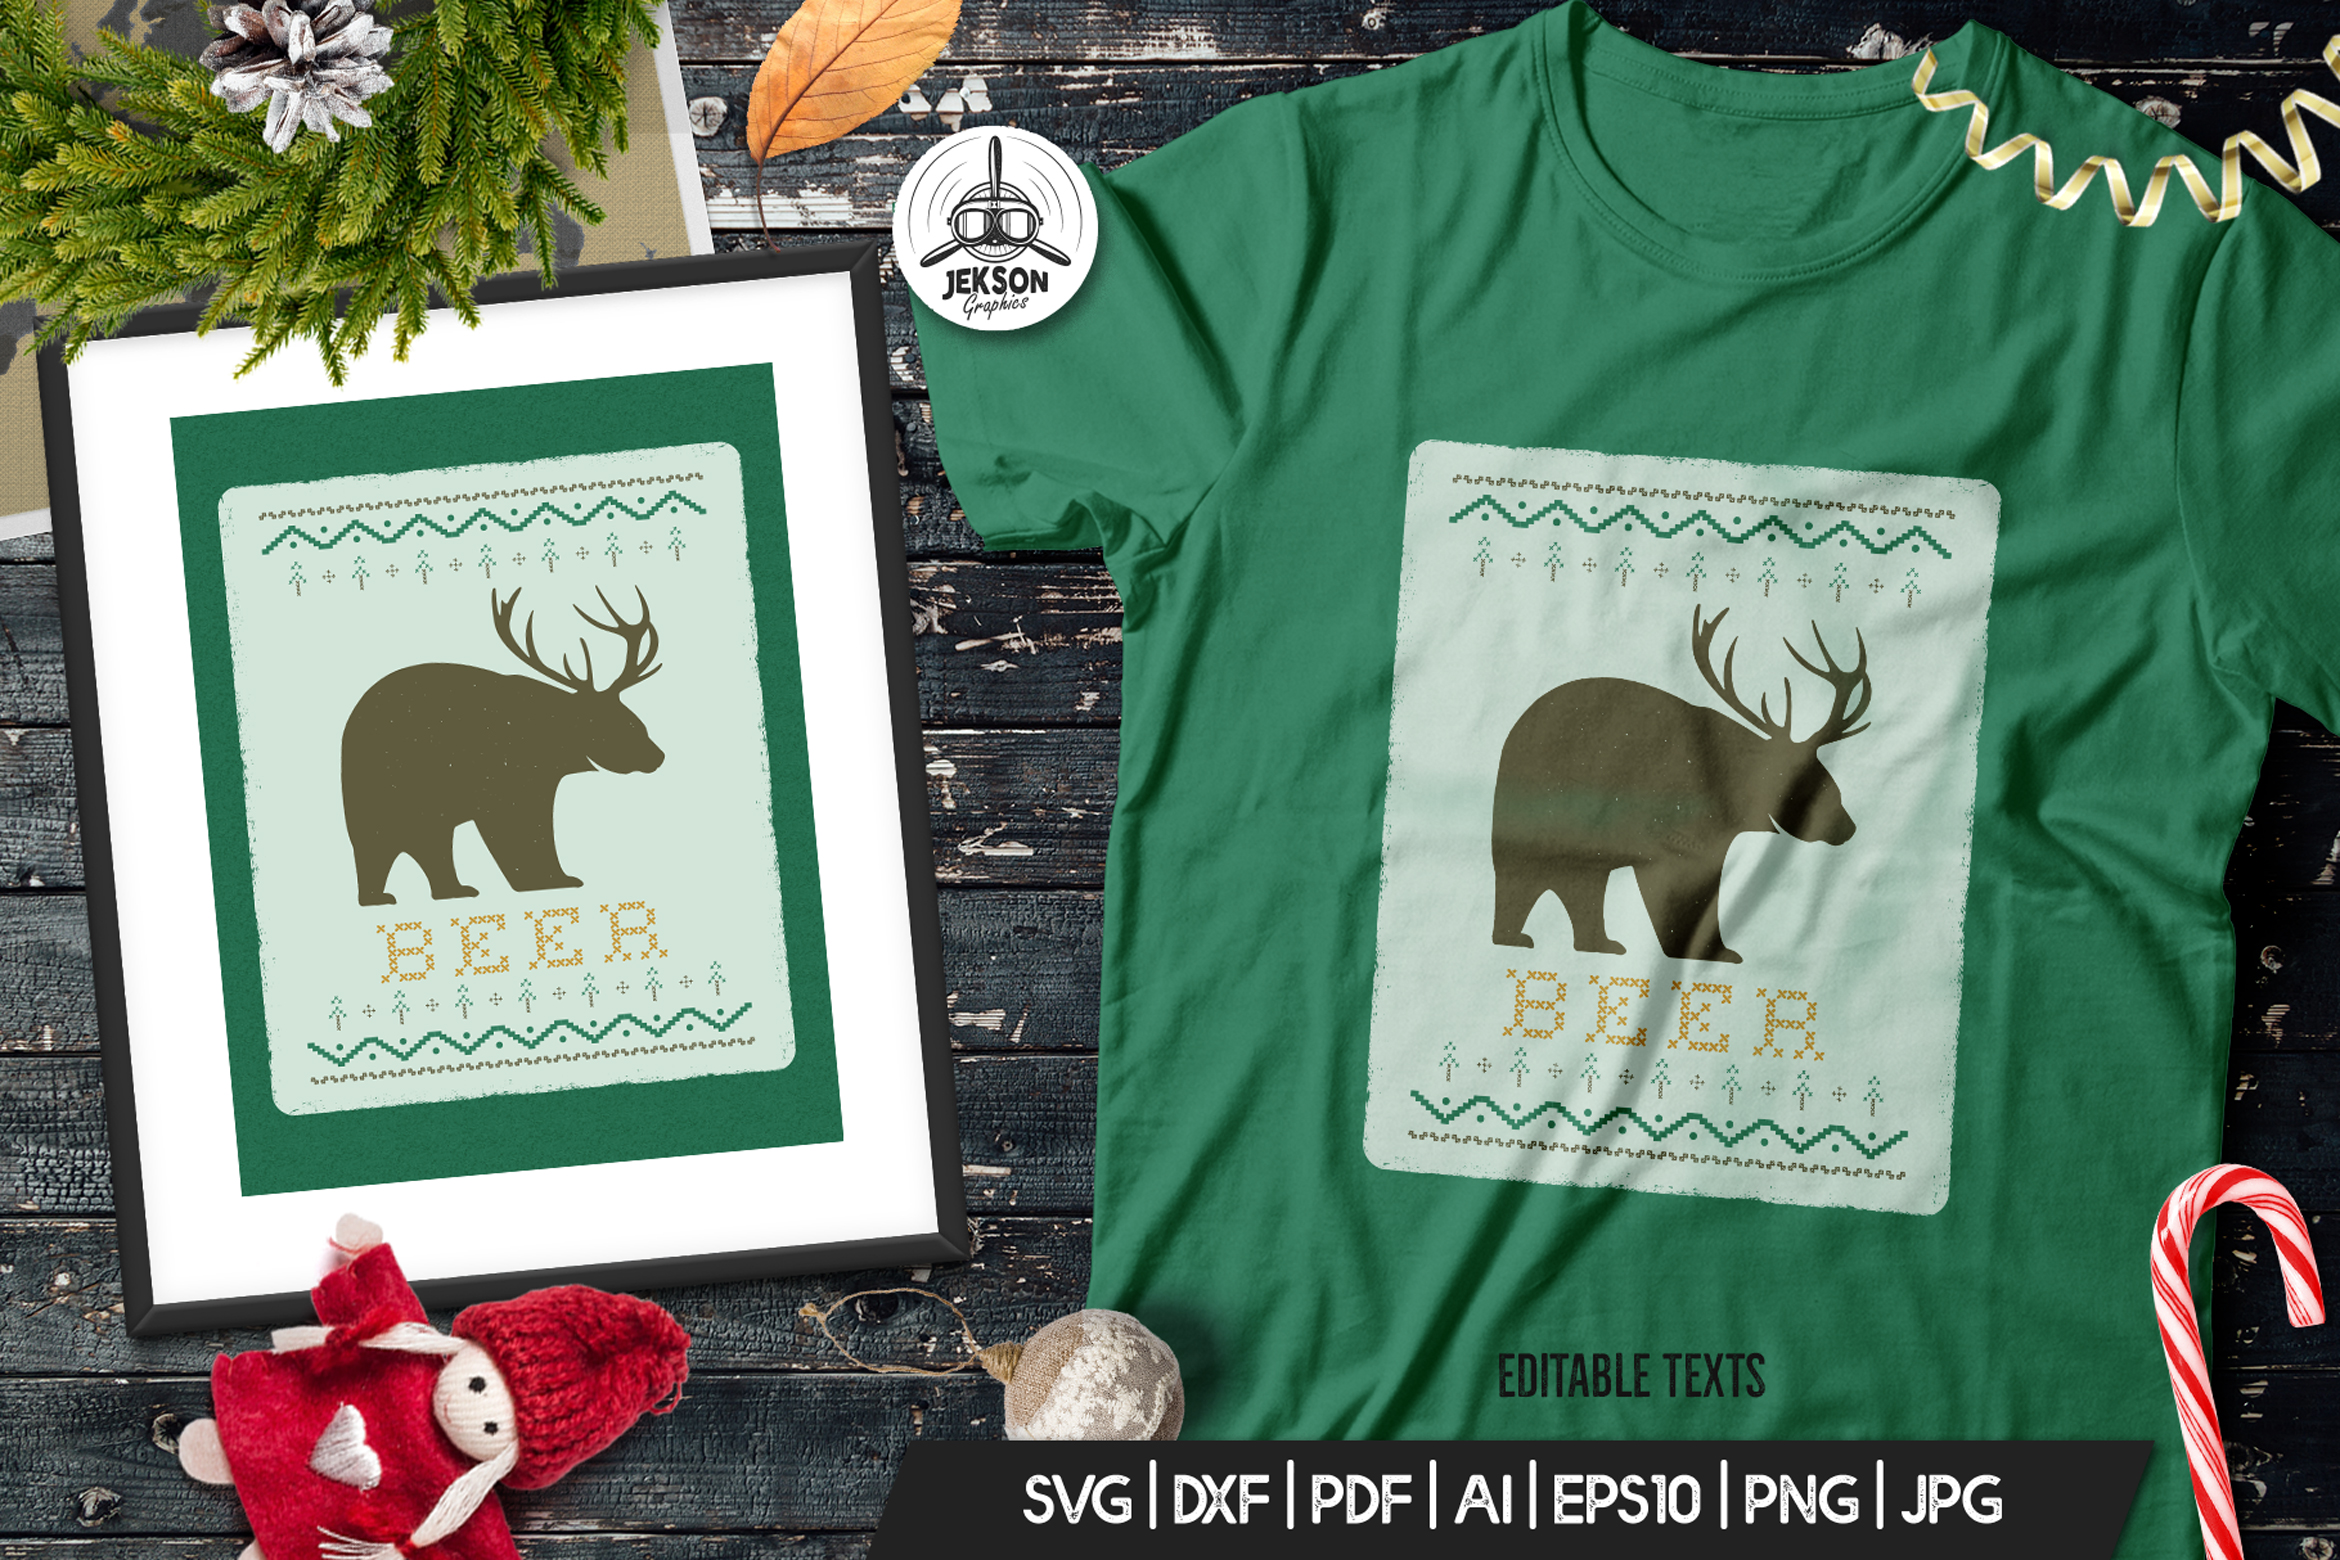 Download Free Funny Christmas Print T Shirt Sweater Graphic By Jeksongraphics for Cricut Explore, Silhouette and other cutting machines.